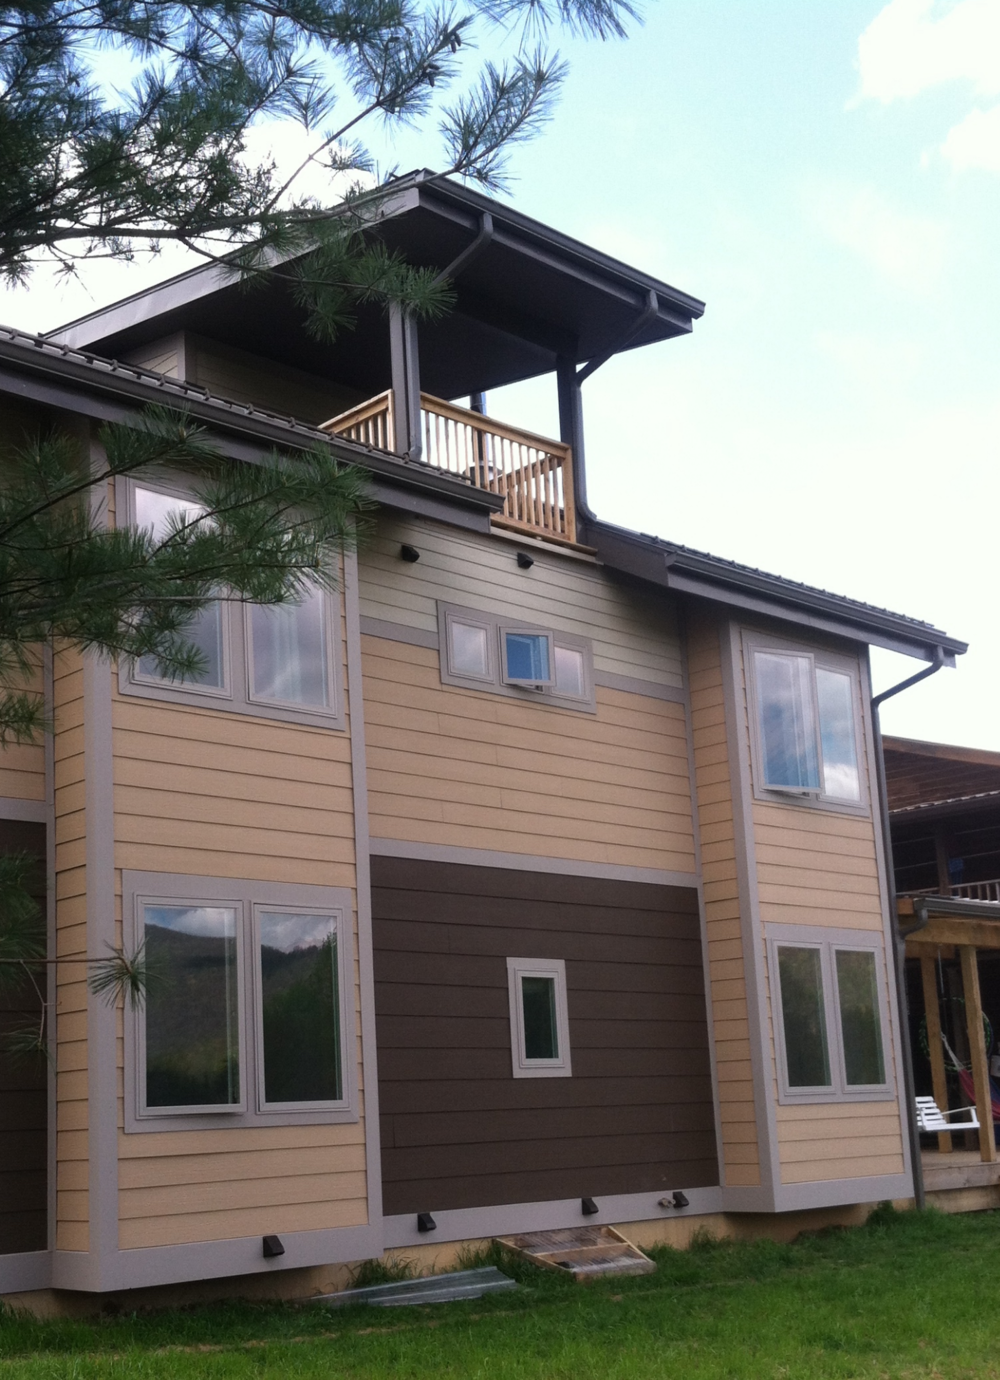 Concrete siding on SIPs along with High Performance windows